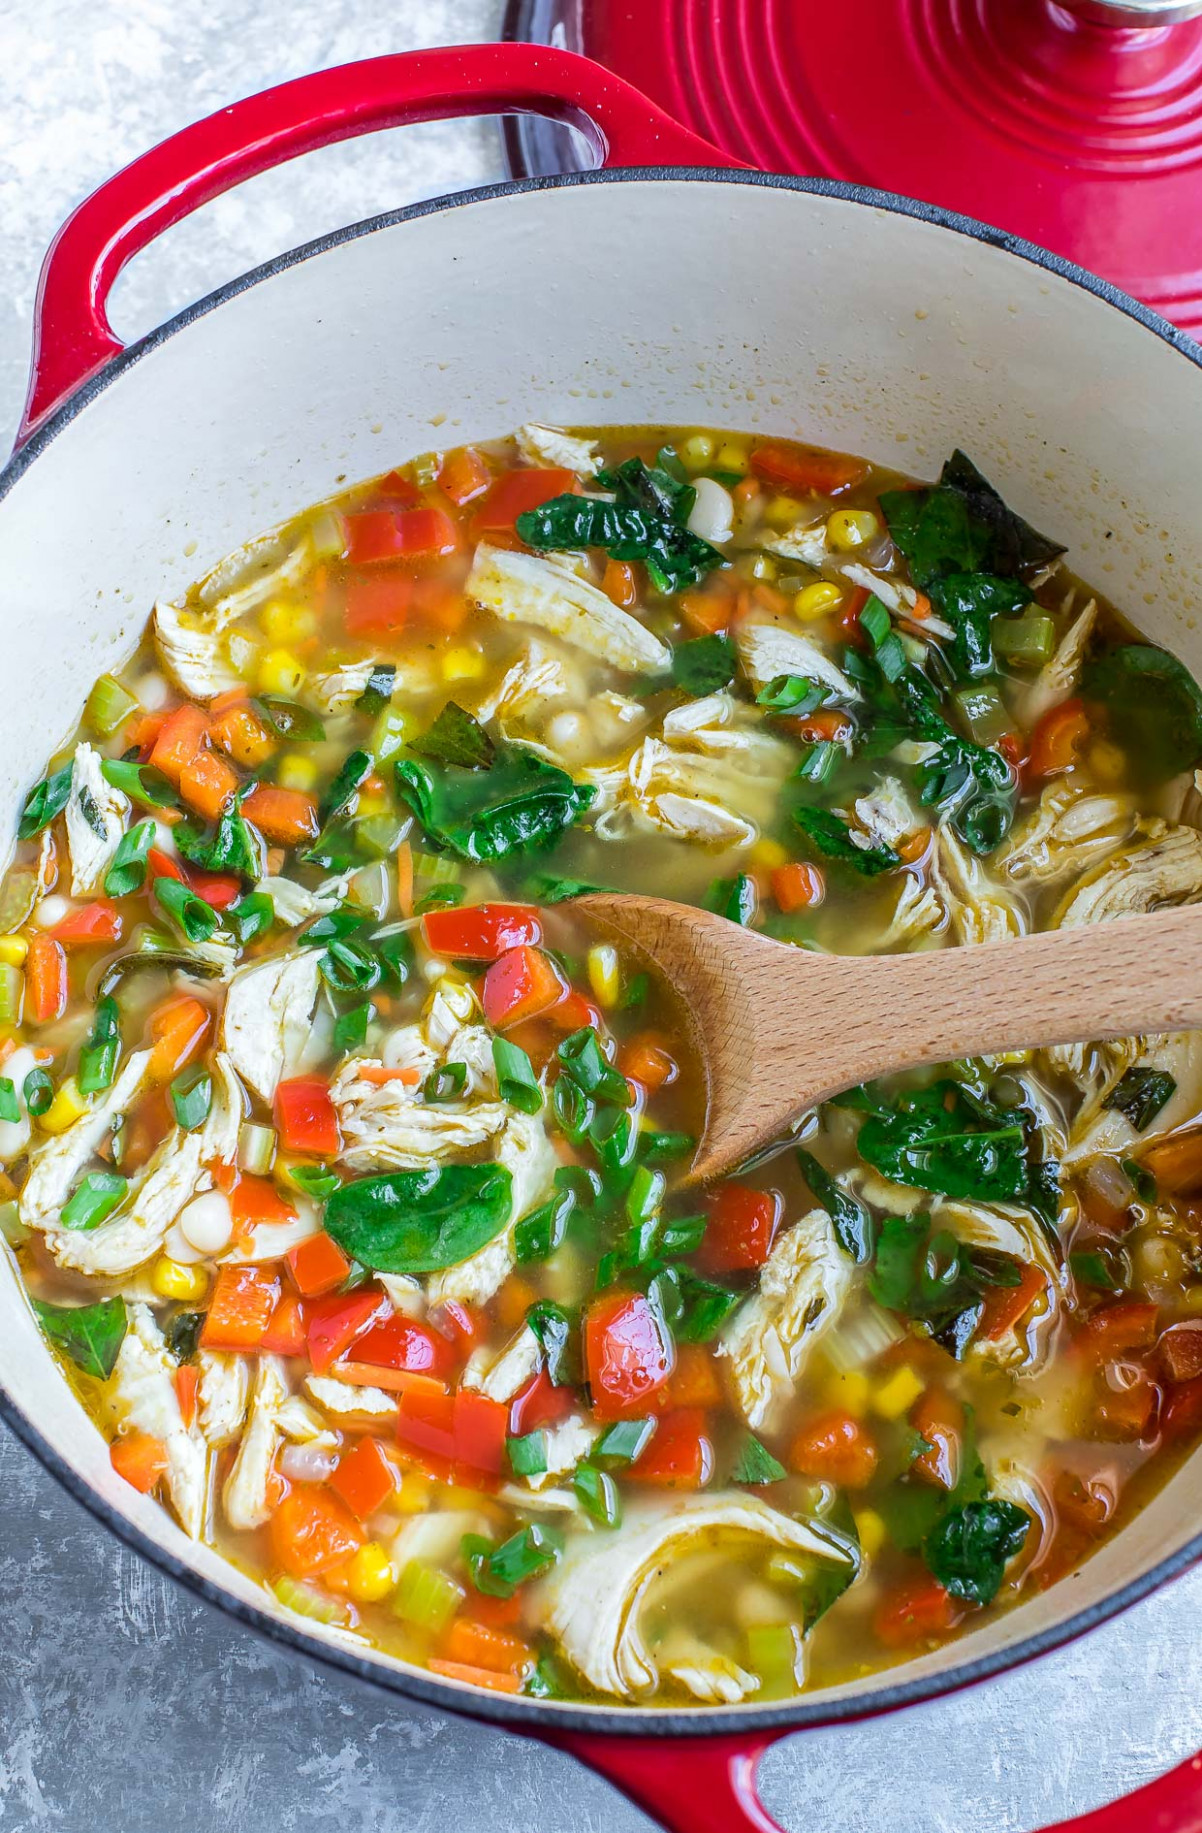 homemade chicken vegetable soup from scratch - best homemade chicken vegetable soup recipes